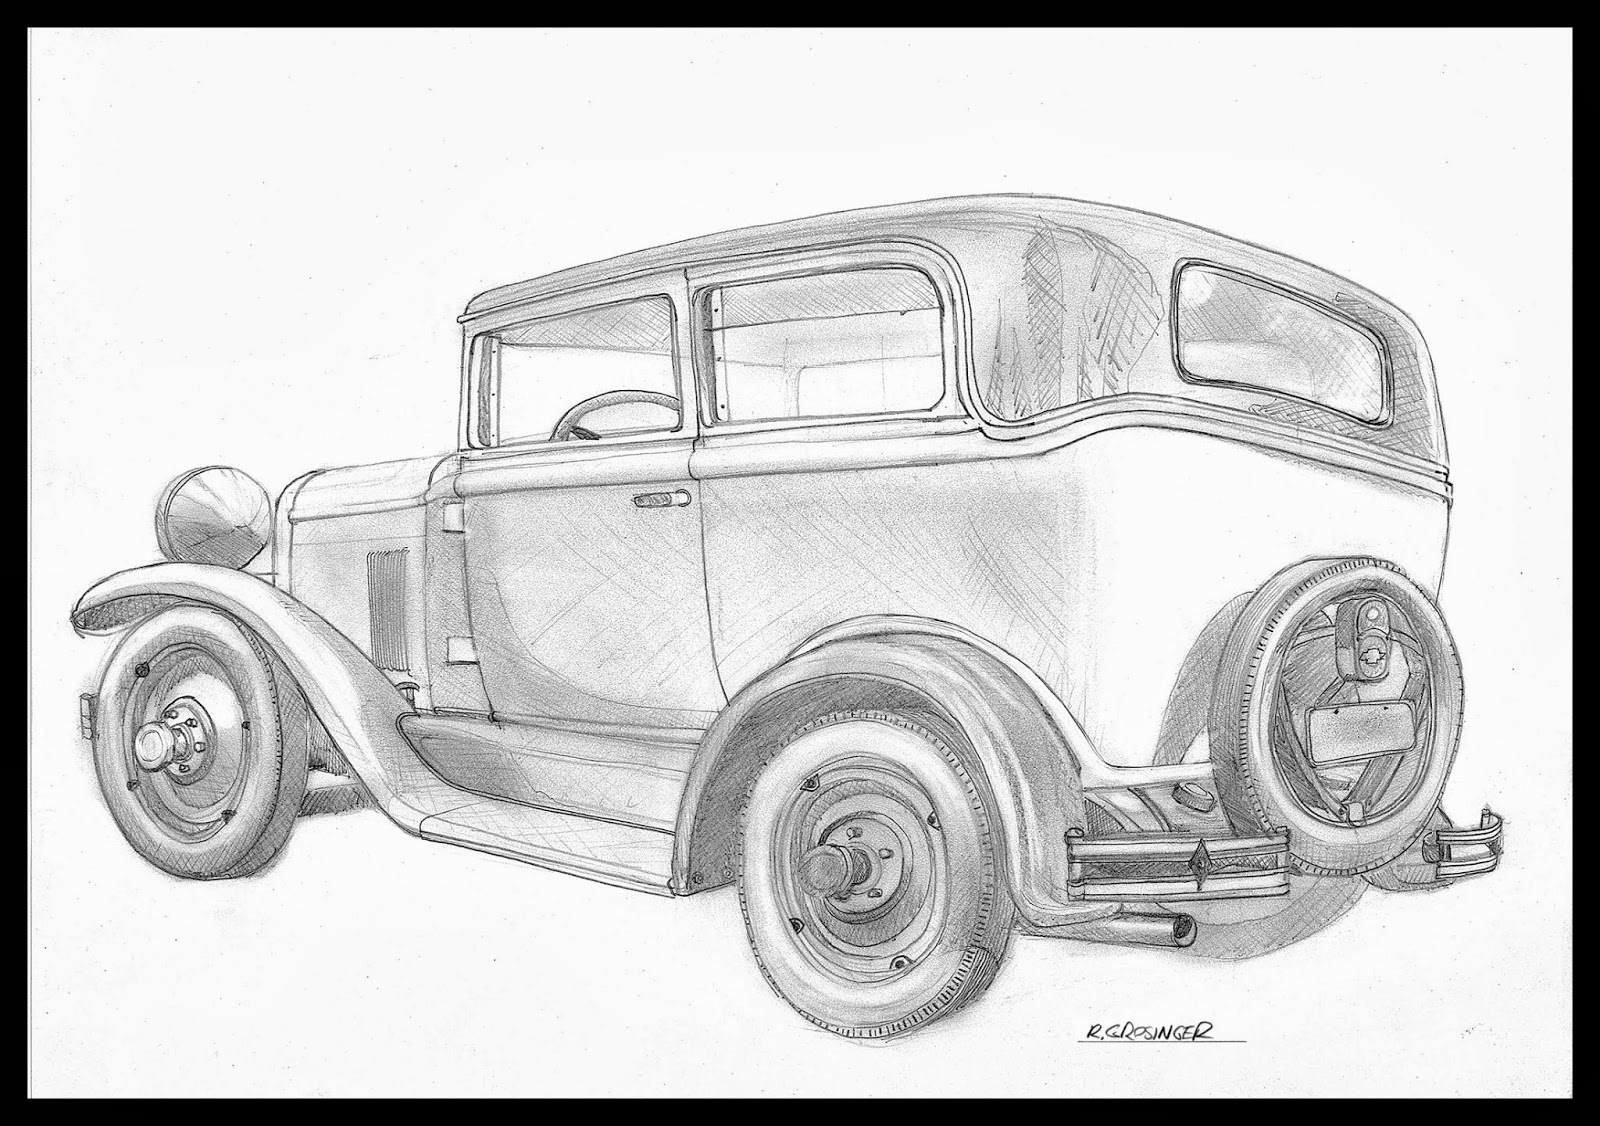 Ron Grosinger S Occasional Car Drawings Drawing Of A 1929 Chevrolet